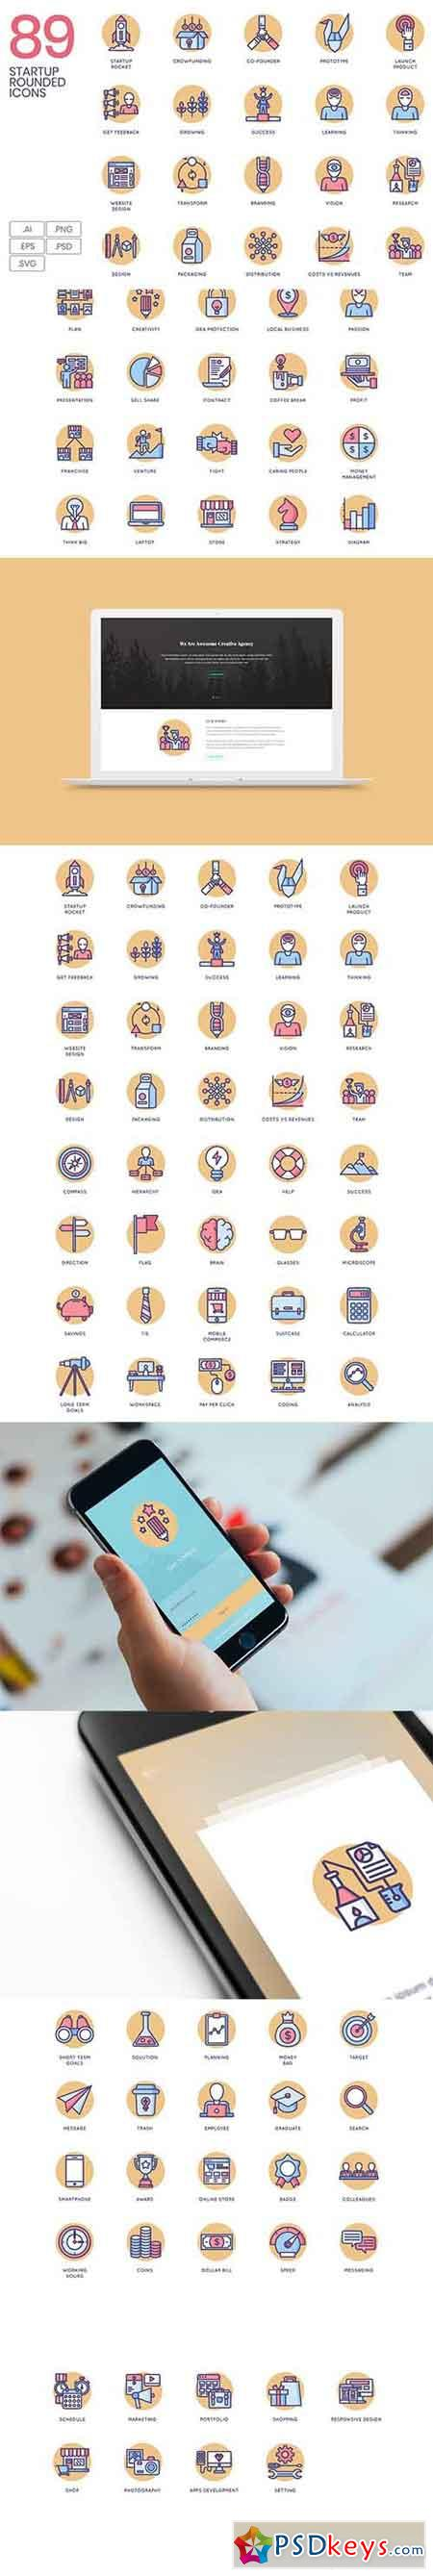 Startup Rounded Flat Icons